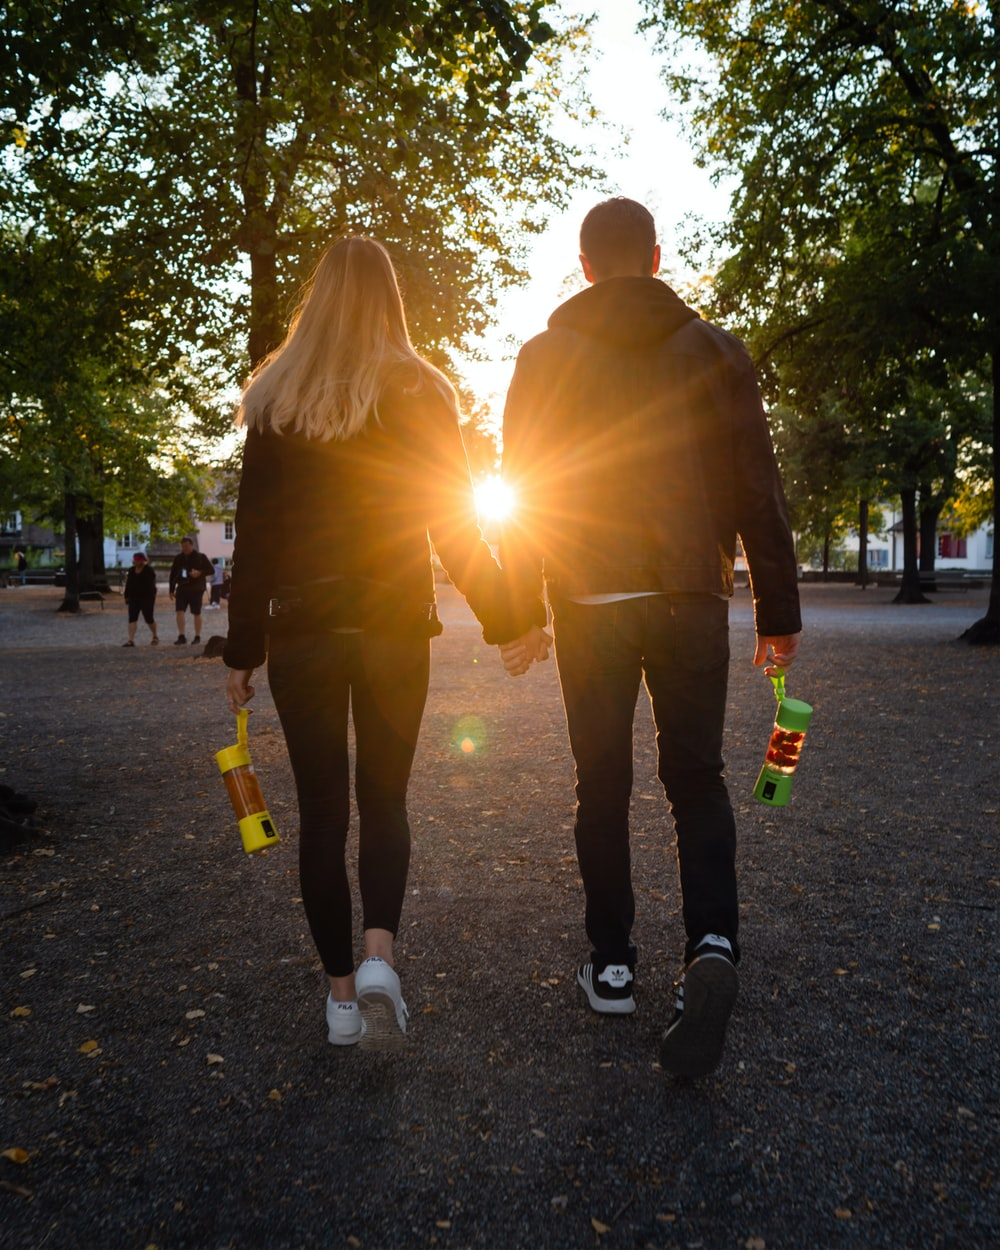 man and woman in black jacket walking on pathway near trees